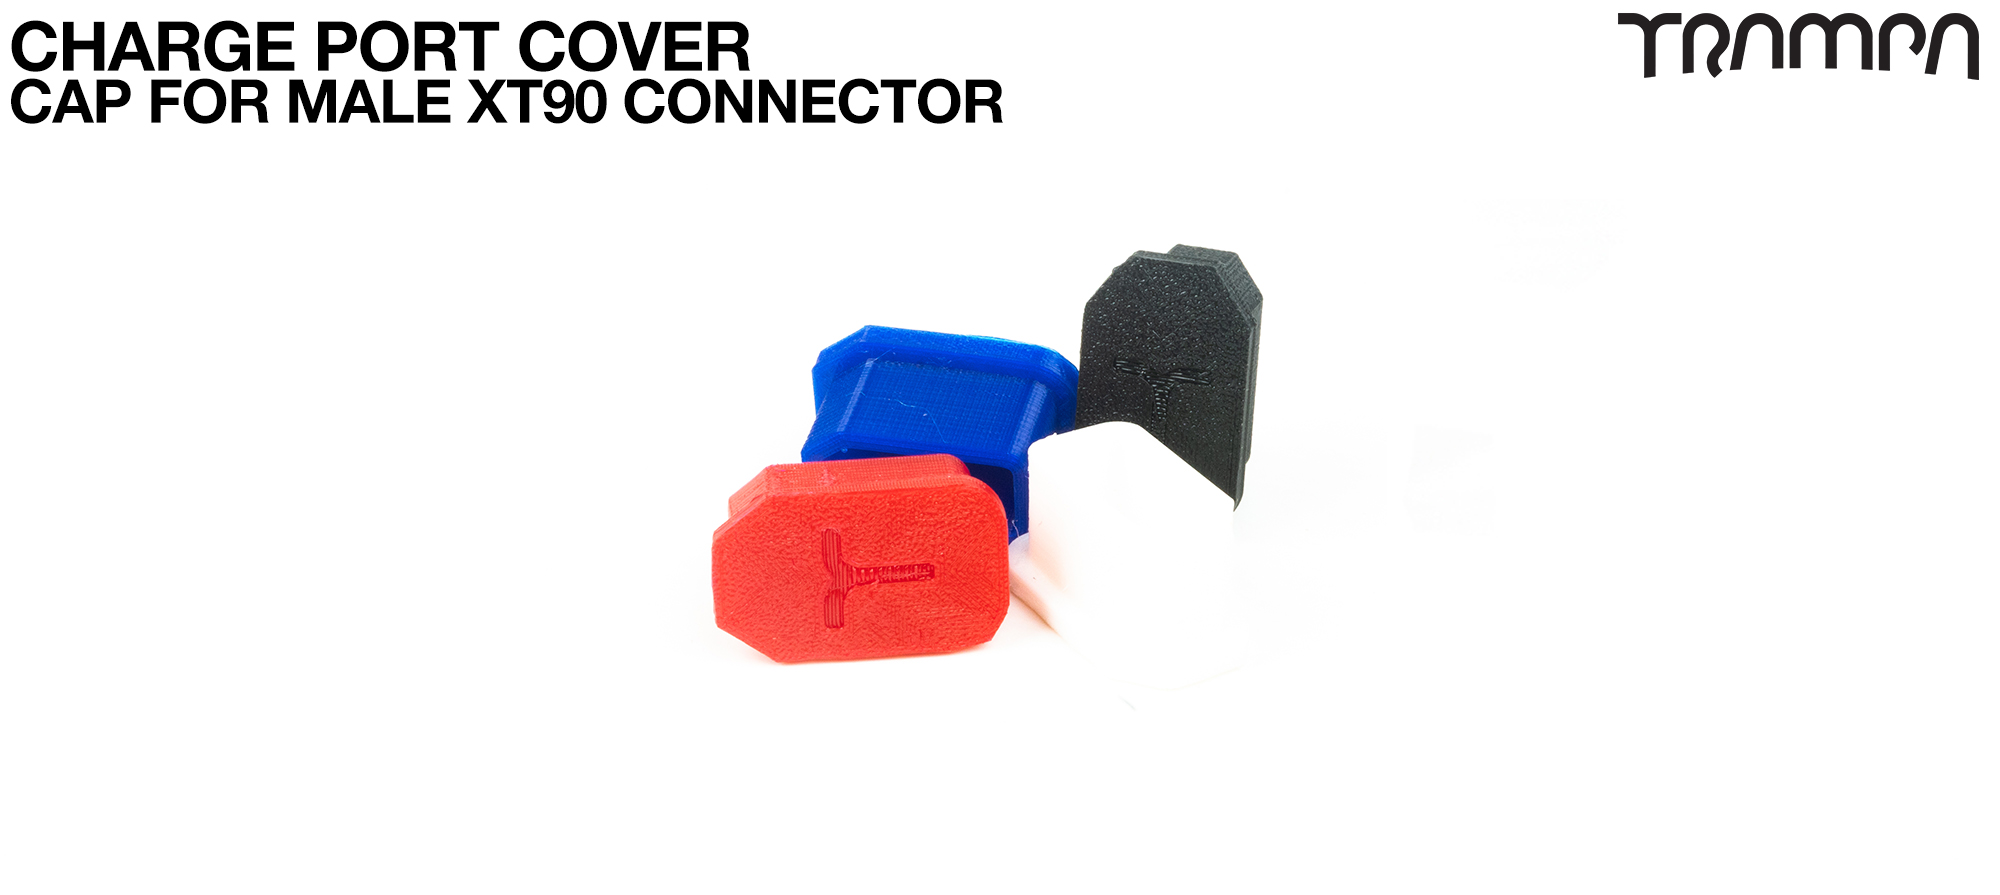 Charge Port Cover - CAP for Male XT90 Connector